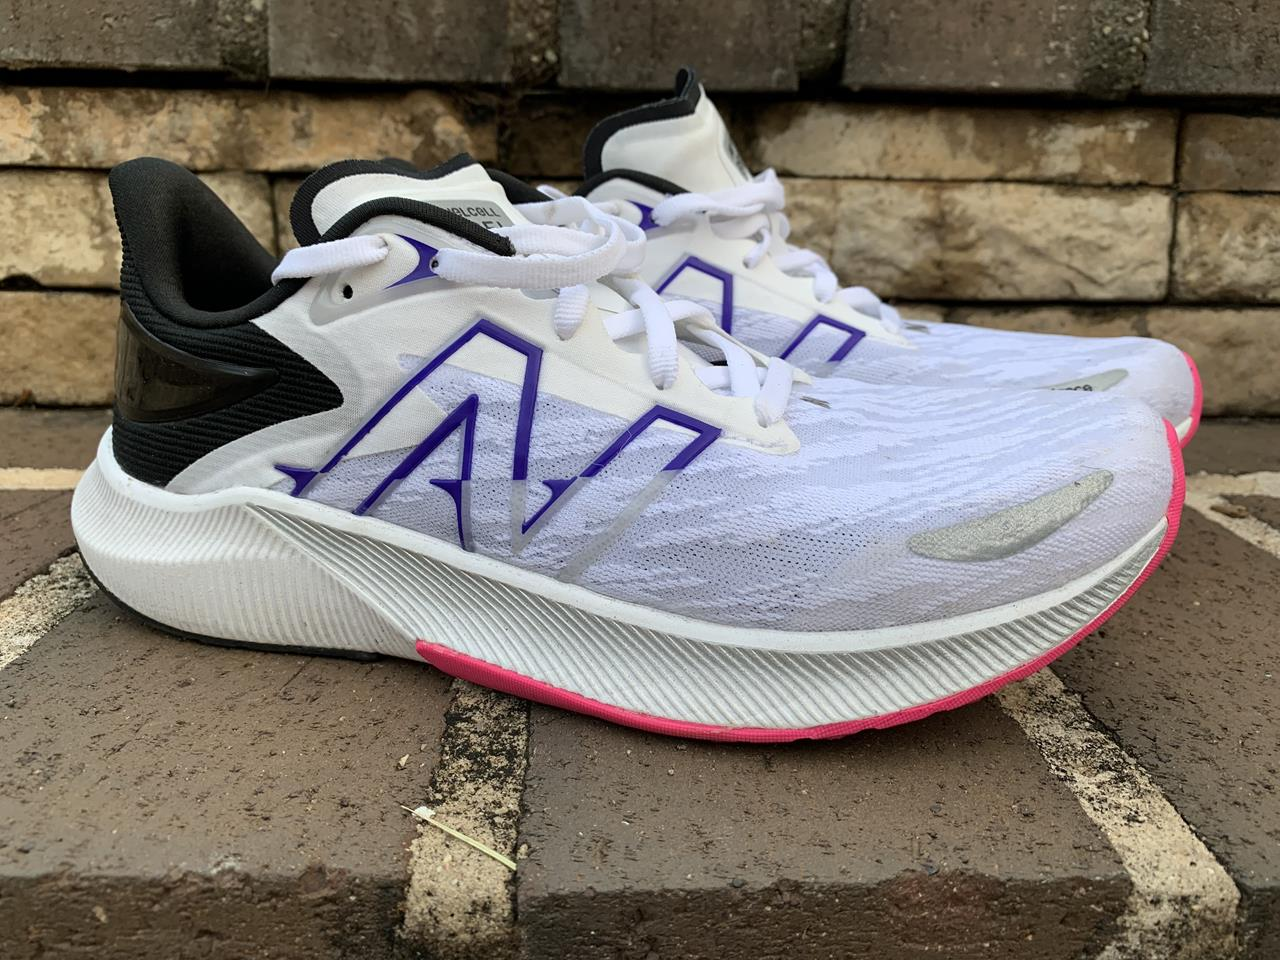 New Balance FuelCell Propel v3 - Lateral Side